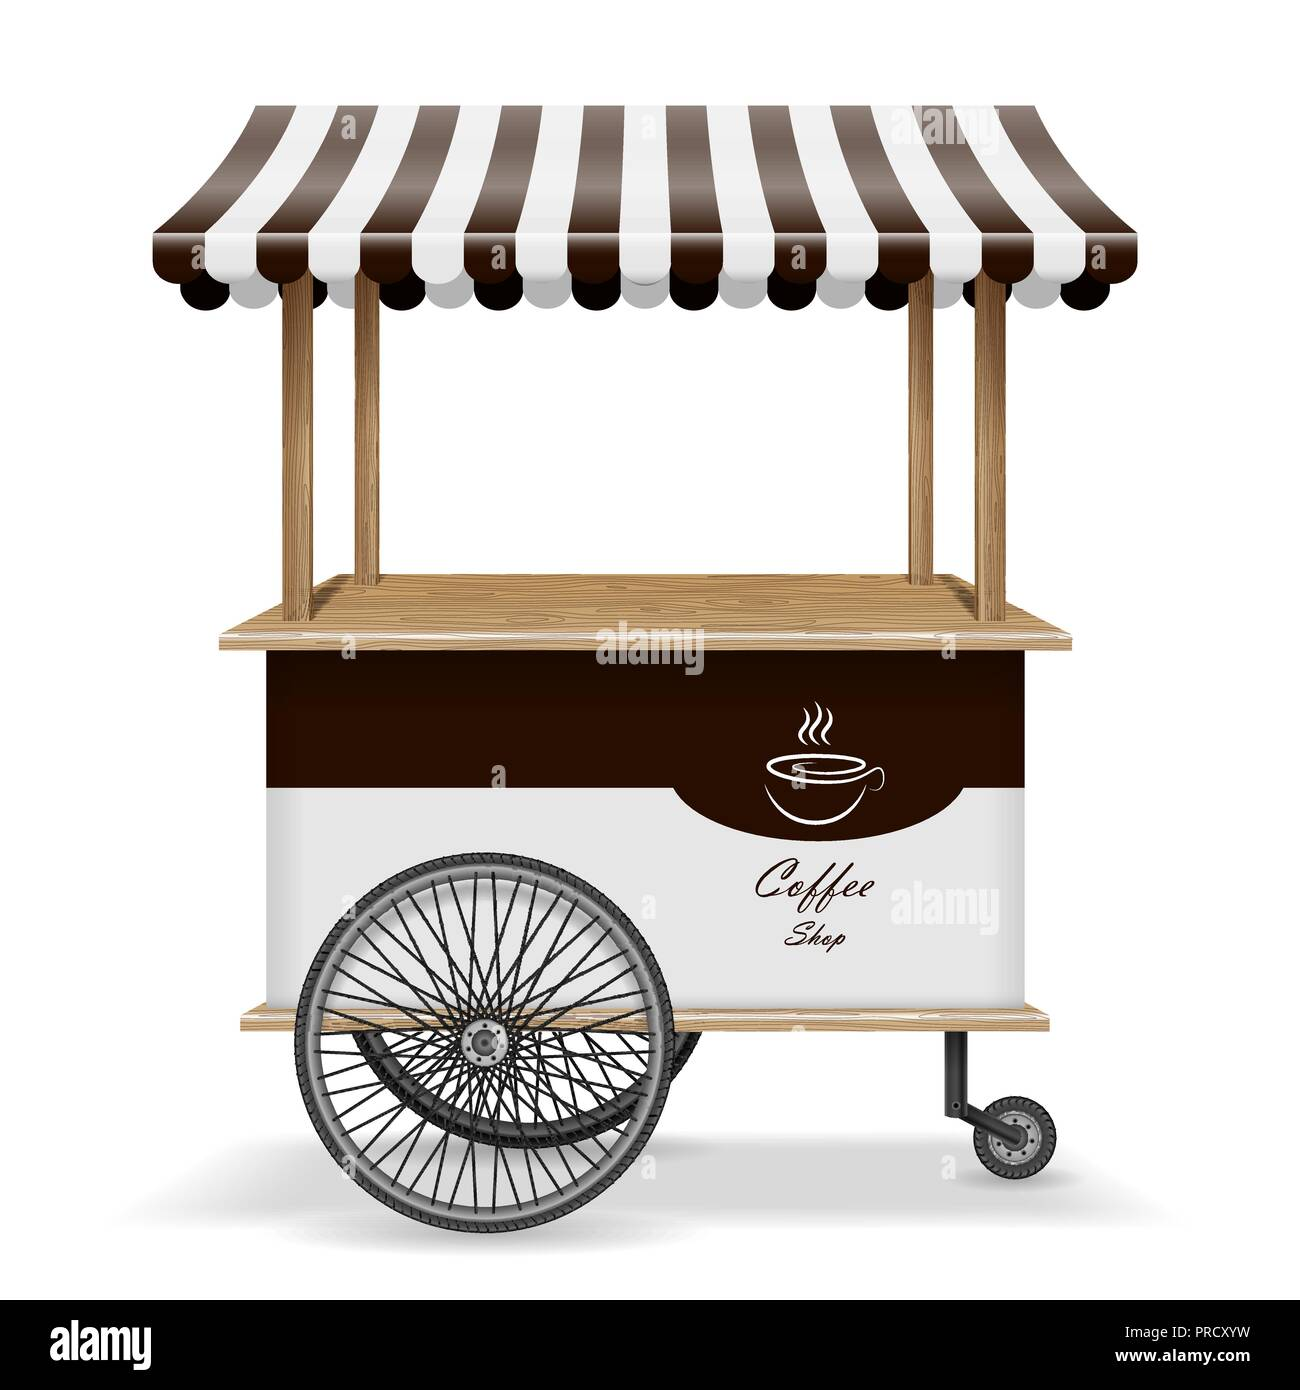 Realistic street food cart with wheels. Mobile coffee market stall template. Hot coffee kiosk store mockup isolated. Vector illustration Stock Vector